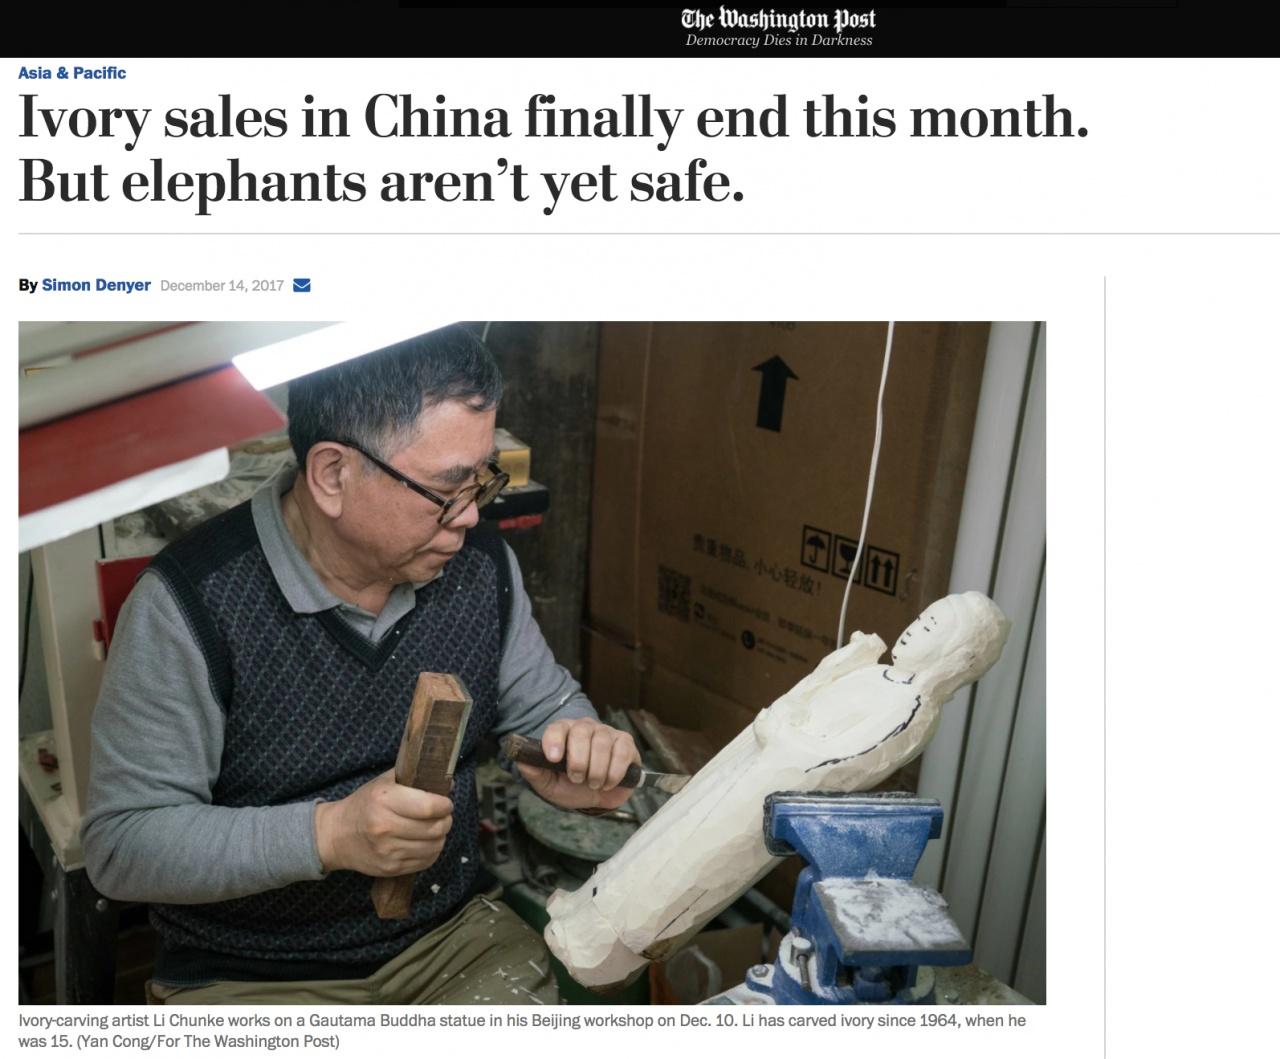 Ivory sales in China finally end this month